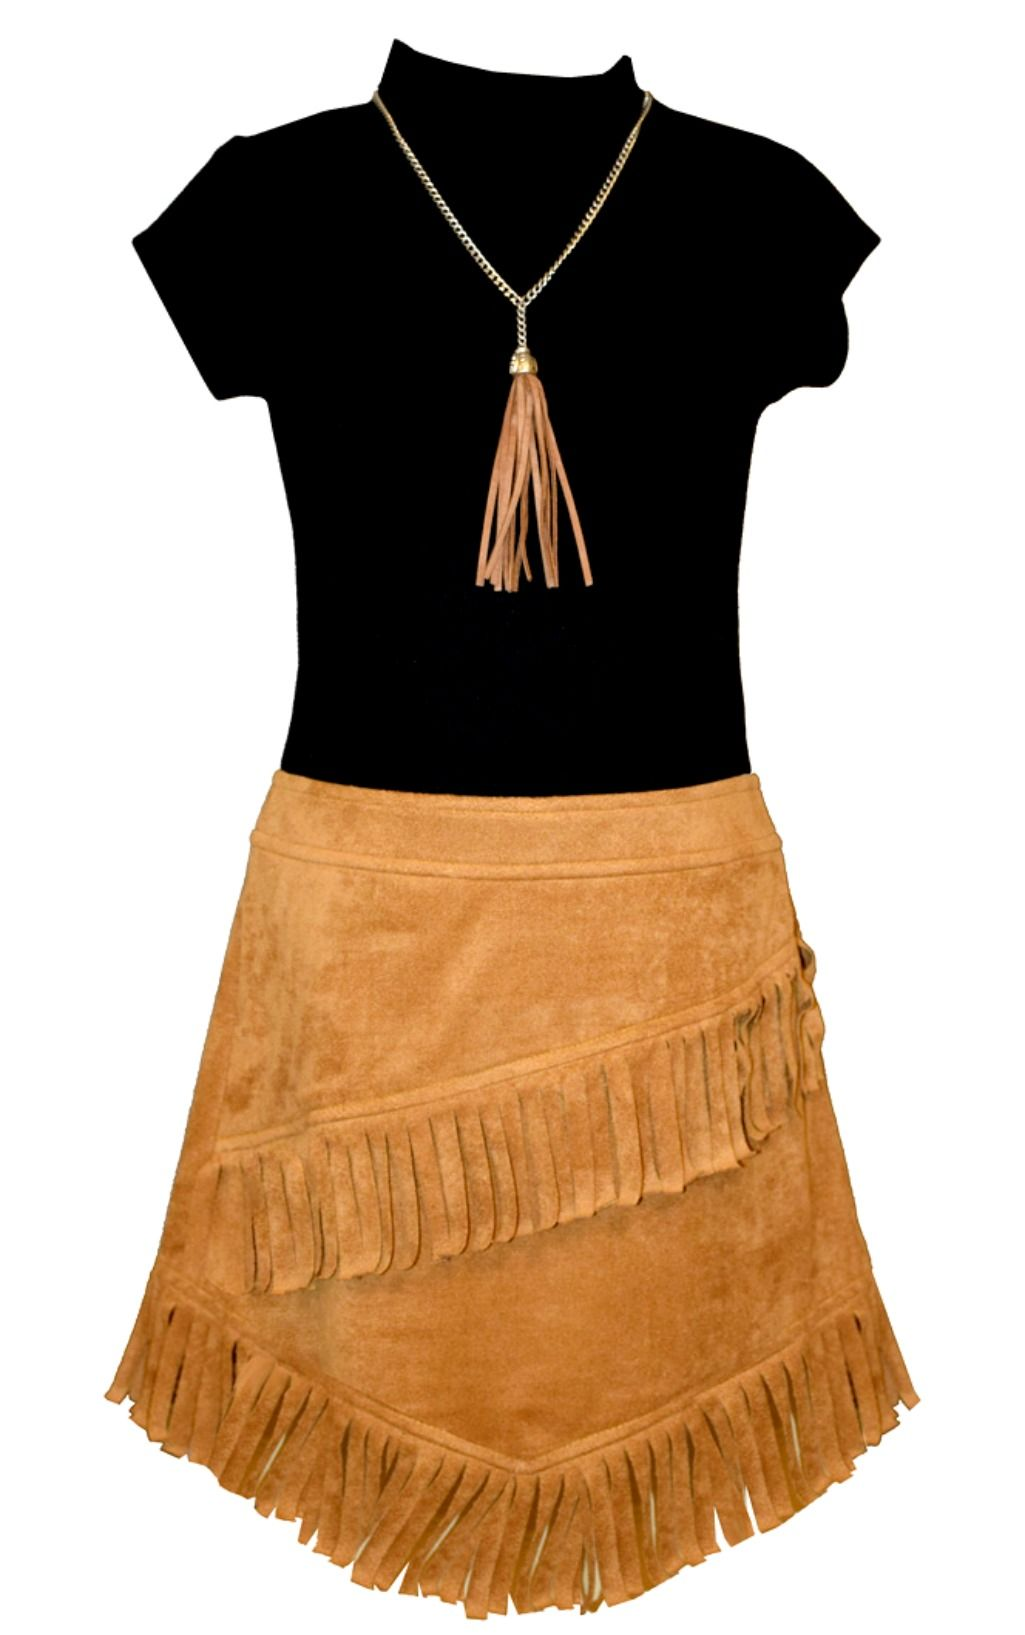 dbc614992b49 Bonnie Jean Girls Short Sleeve Knit Suede Dress with Necklace ...